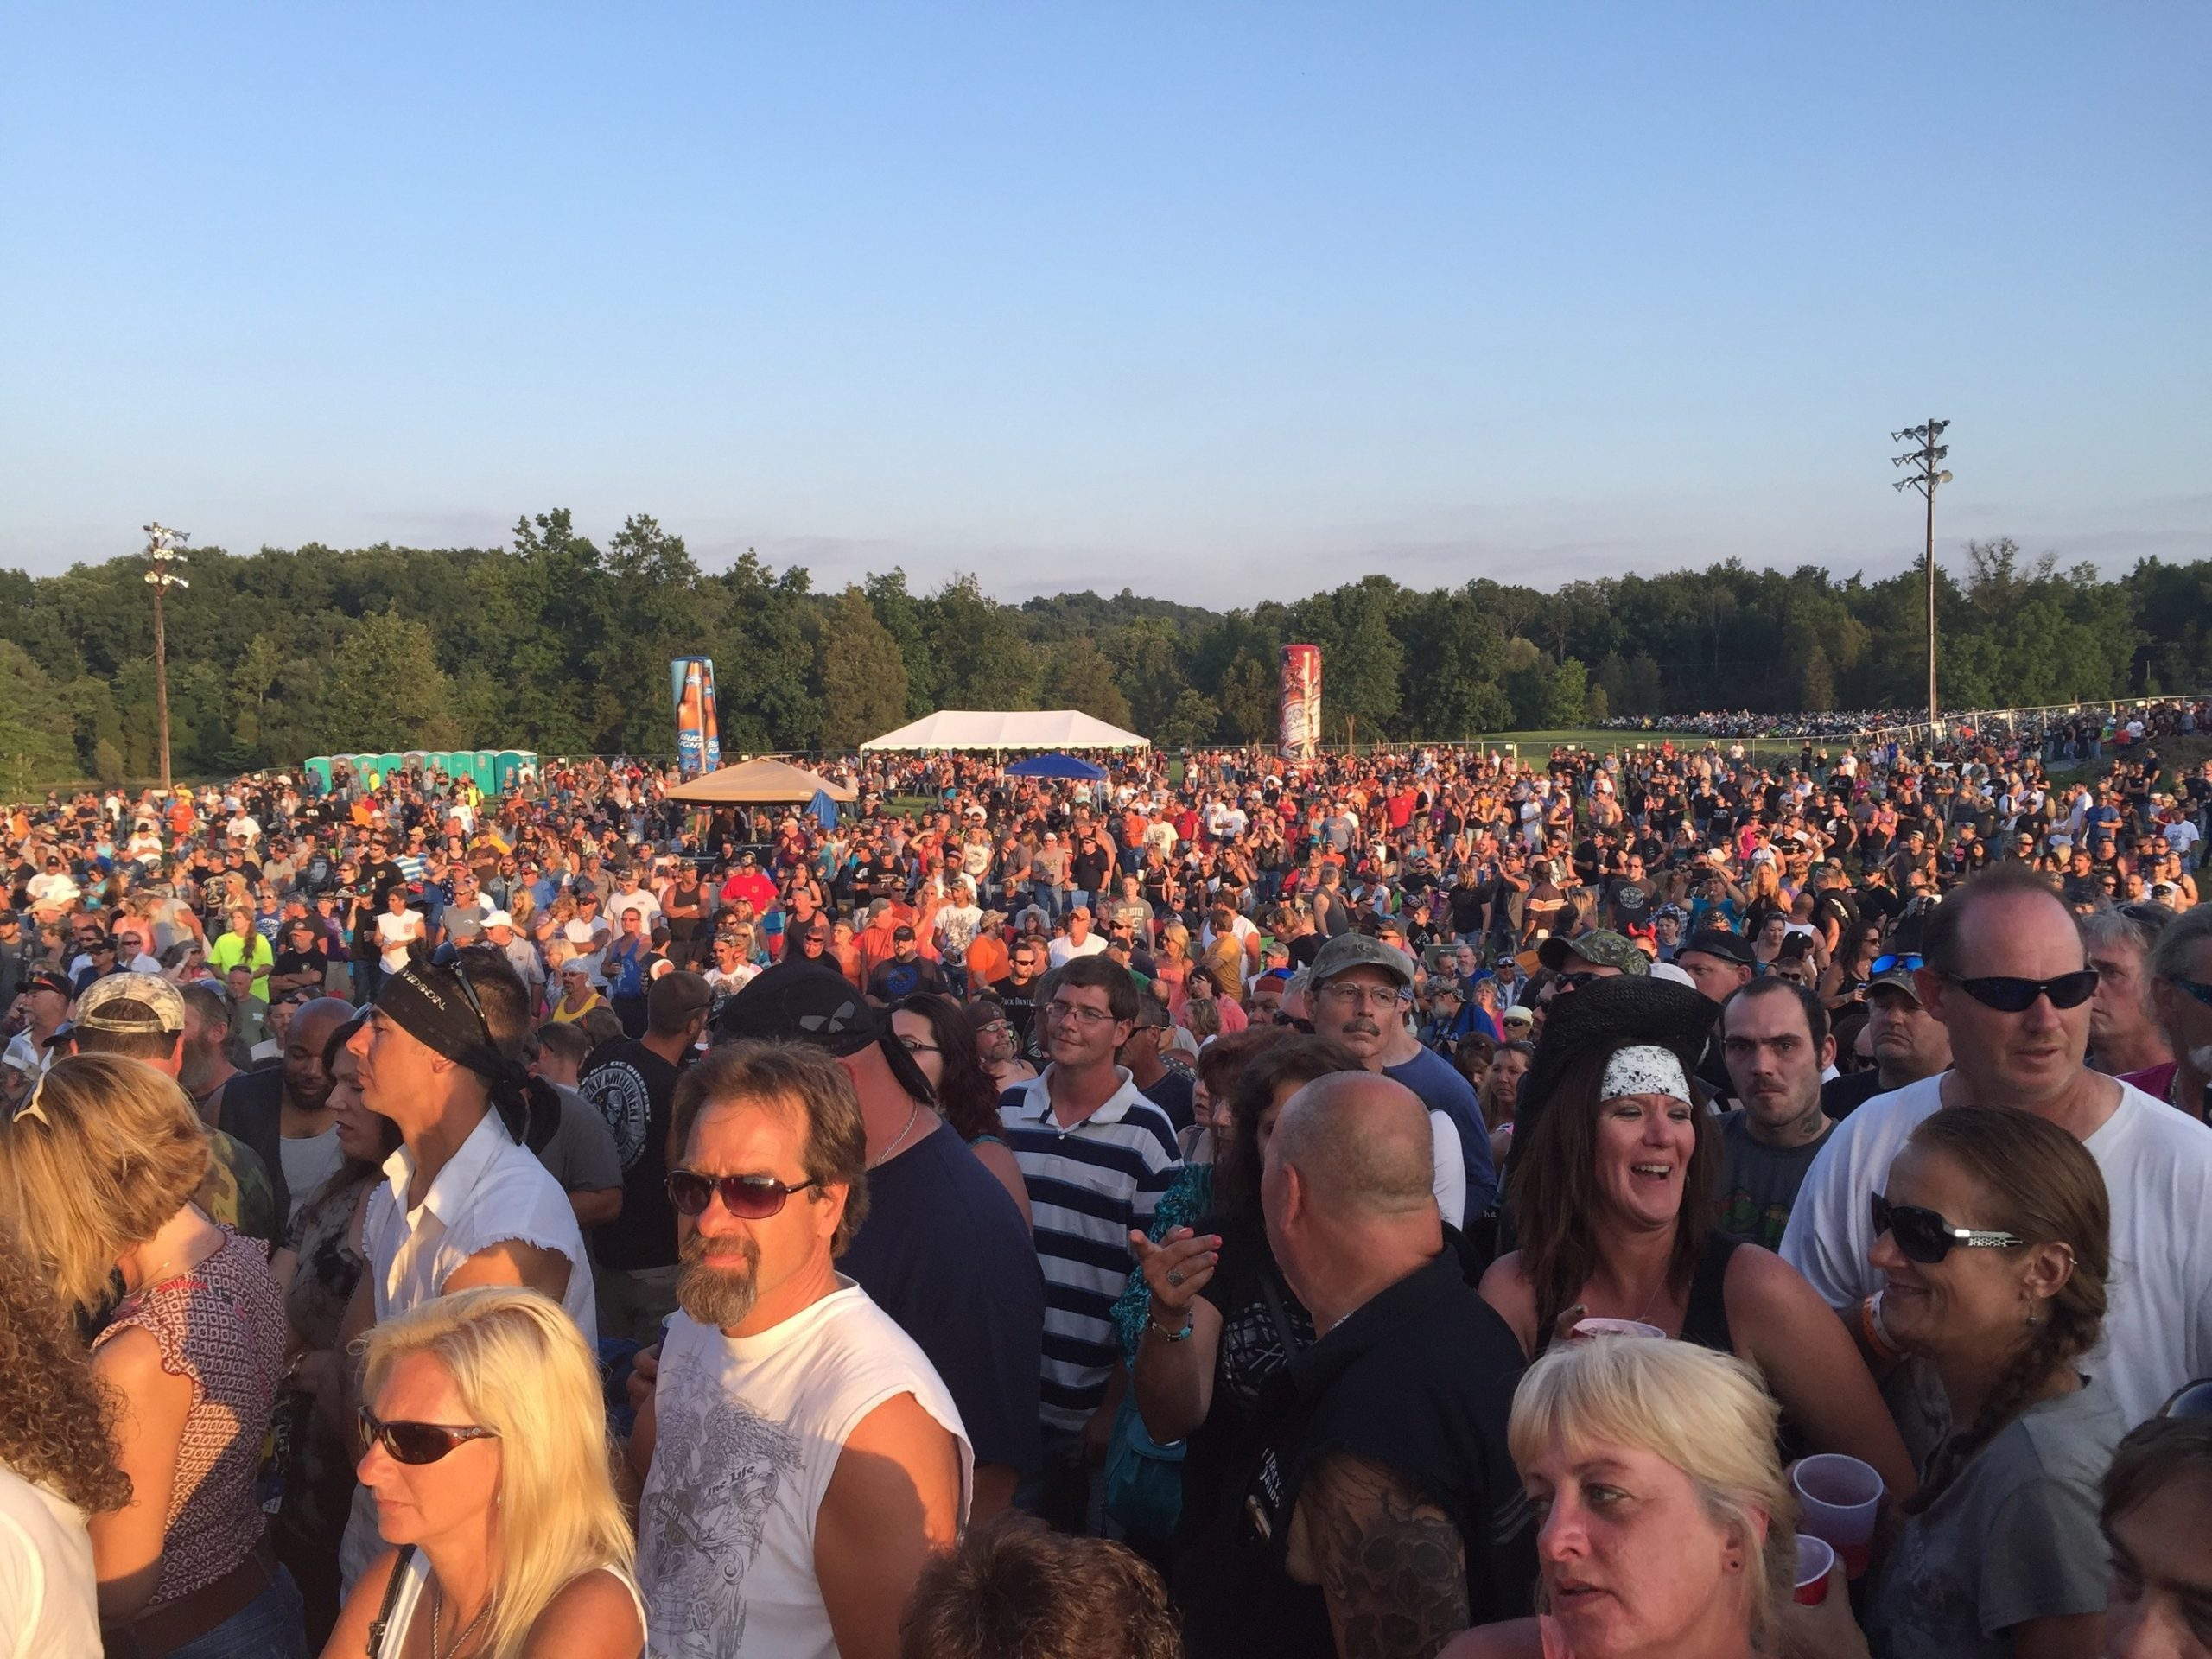 Gettysburg Bike Week 2021 is expected to draw record crowds